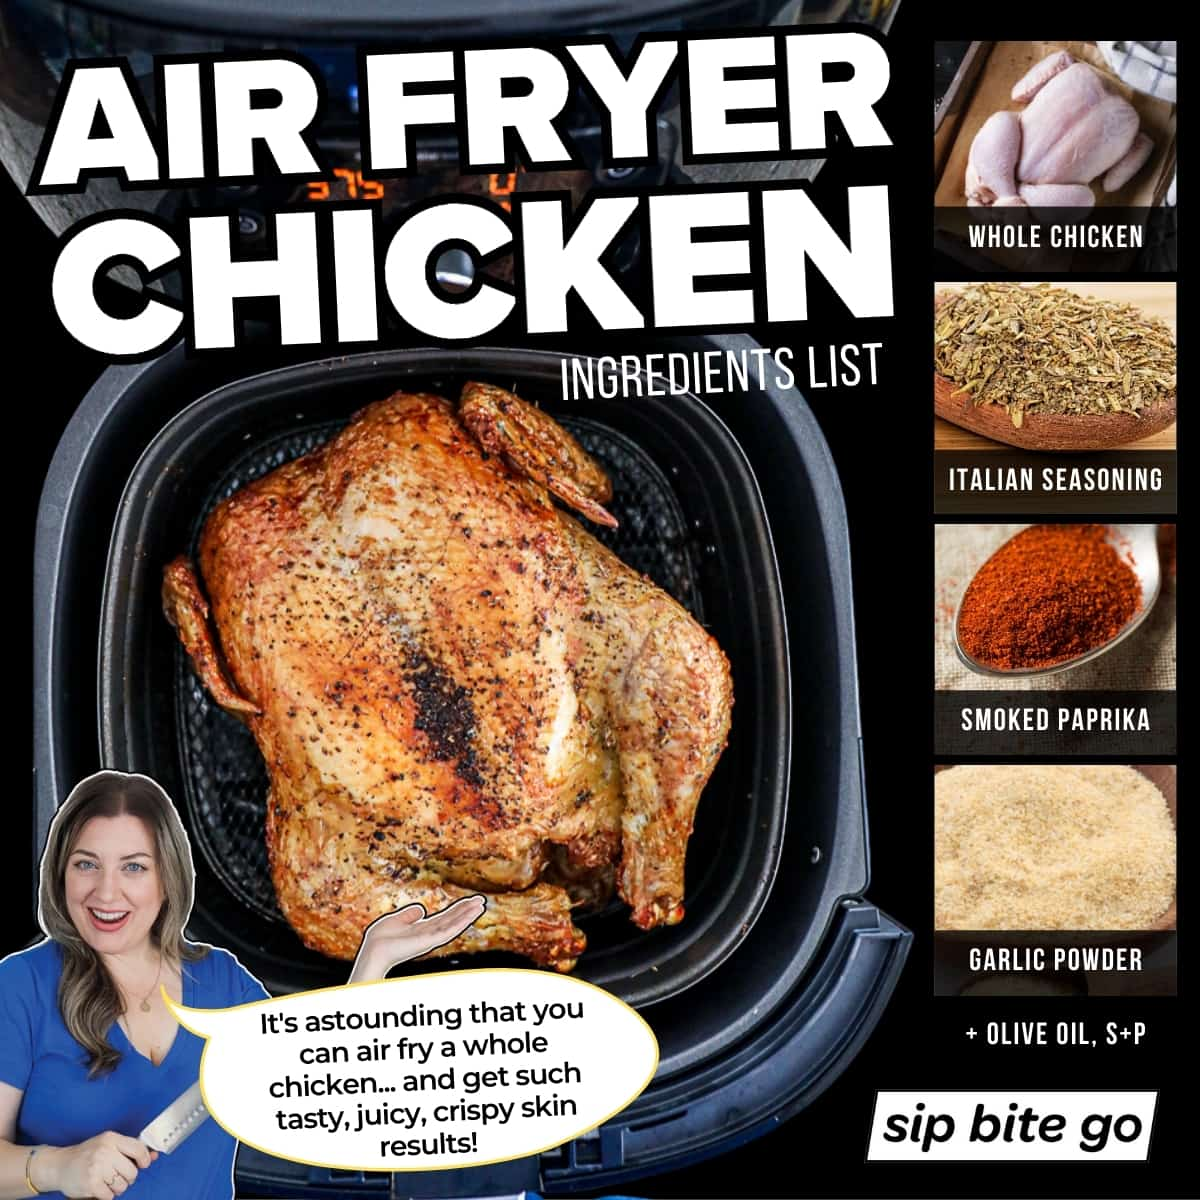 Air Fryer Whole Chicken Ingredients List infographic with photos and text overlay.